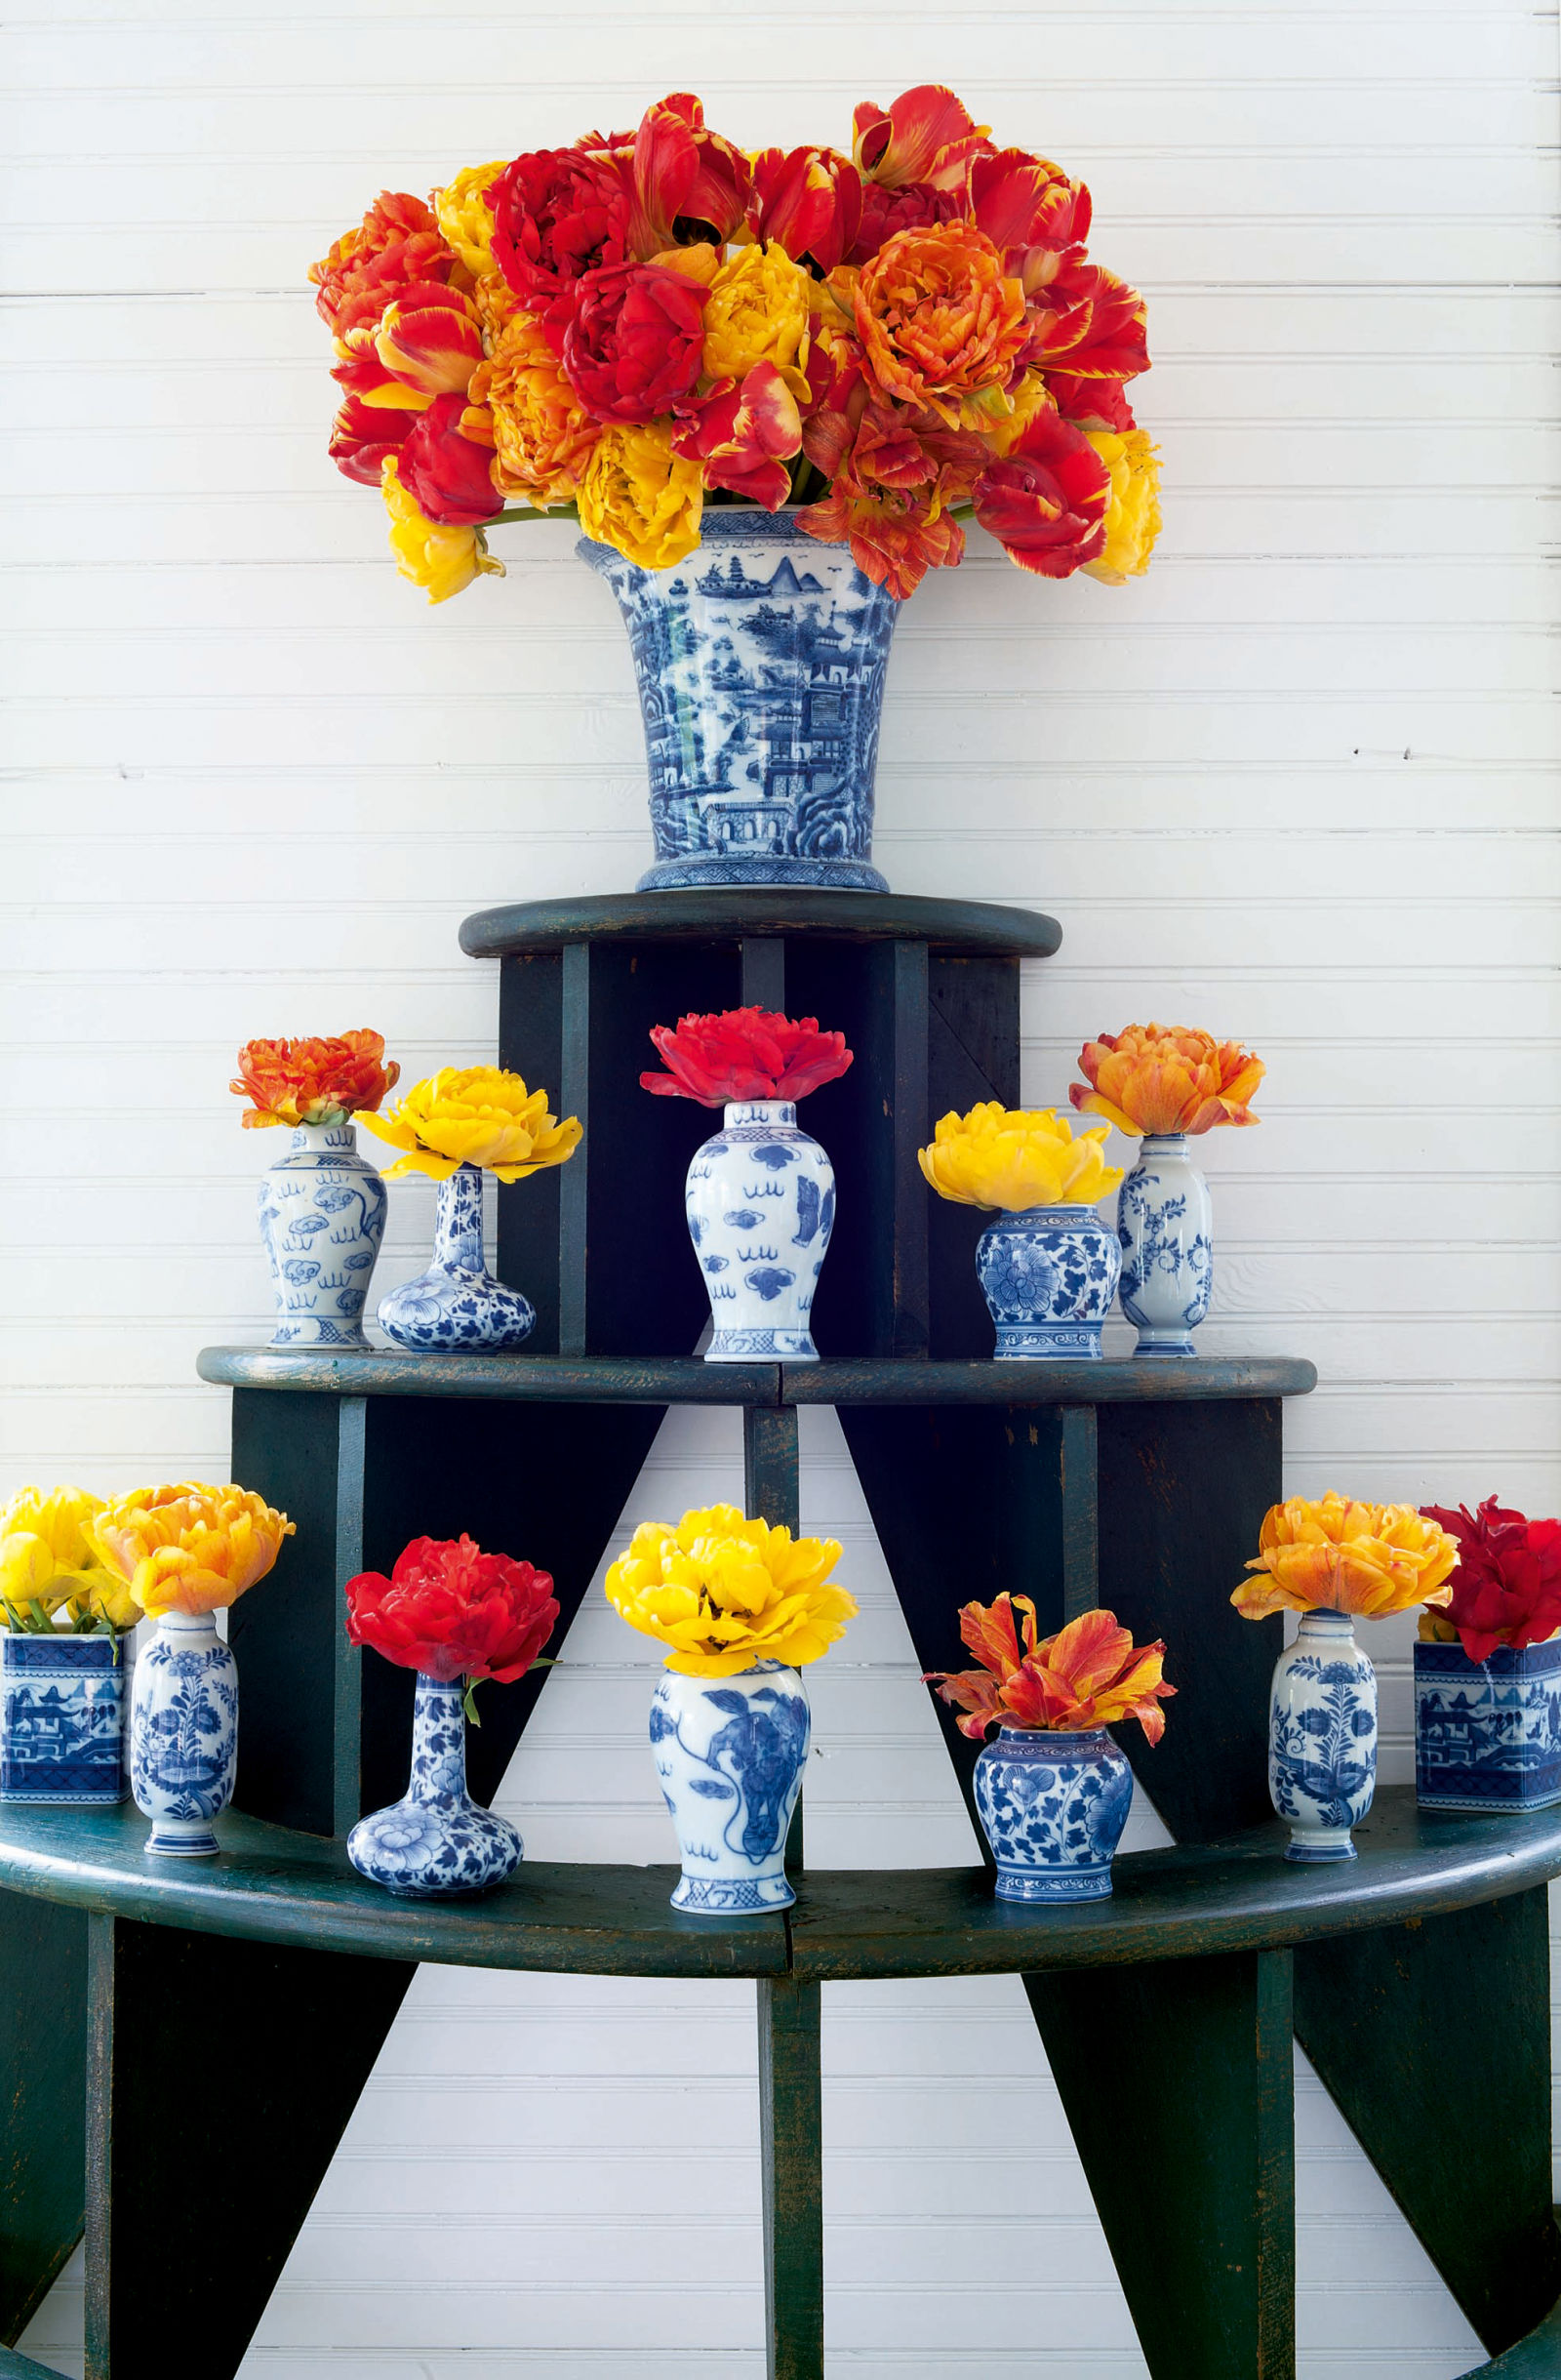 Add A Touch Of Spring To Your Home With These Flower Inspirations